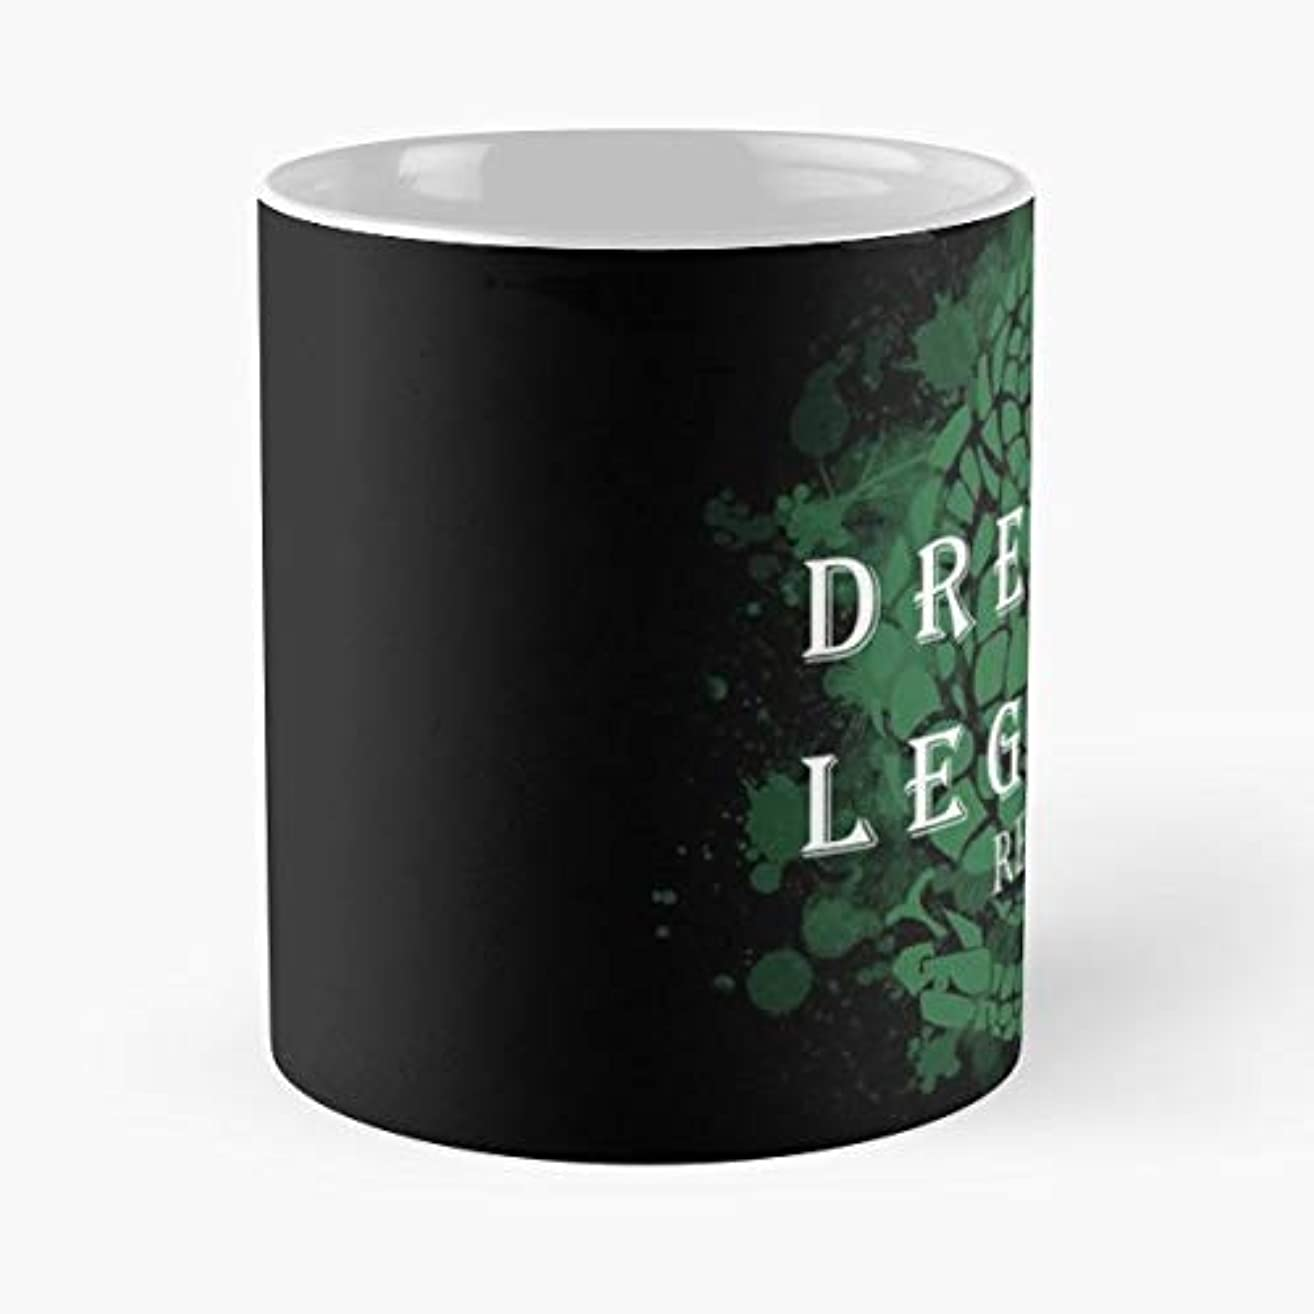 Destiny 2 The Game Gambit Funny Floral Coffee Mugs Gifts